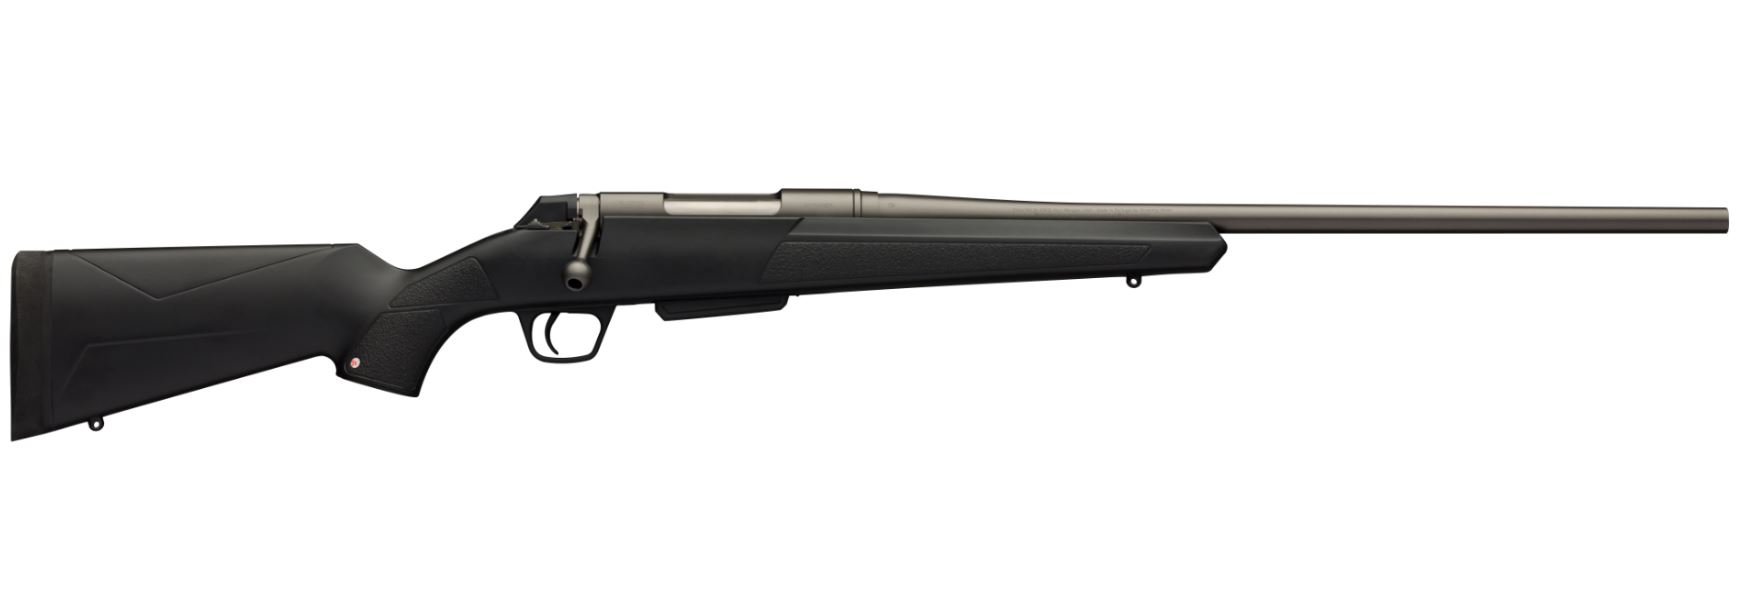 Winchester XPR COMPACT 6.8 WESTERN